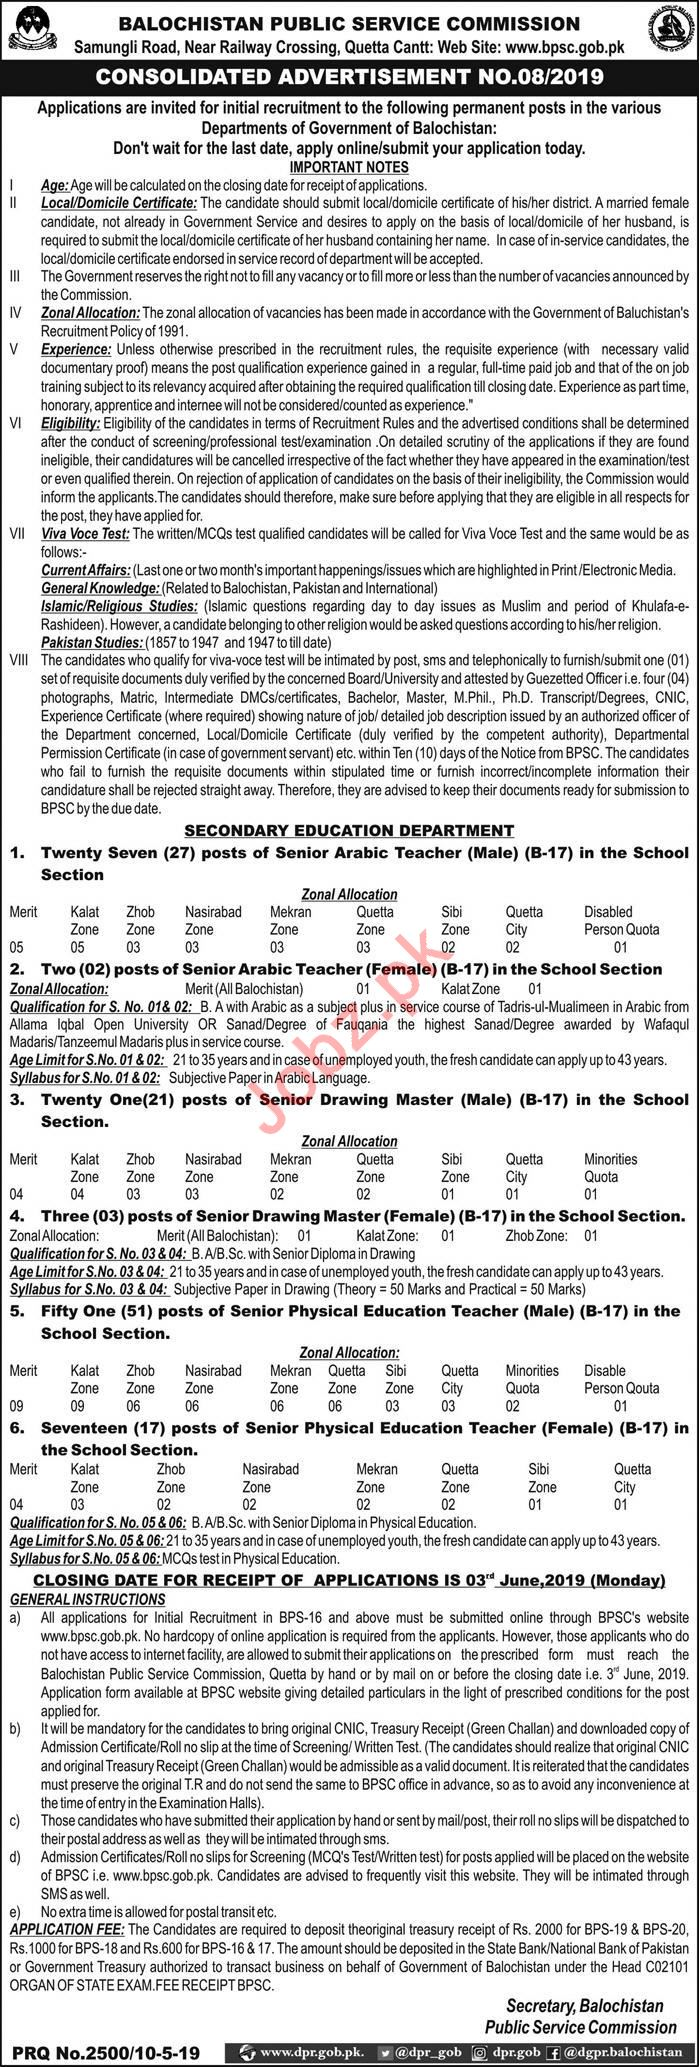 Secondary Education Department Jobs 2019 via BPSC